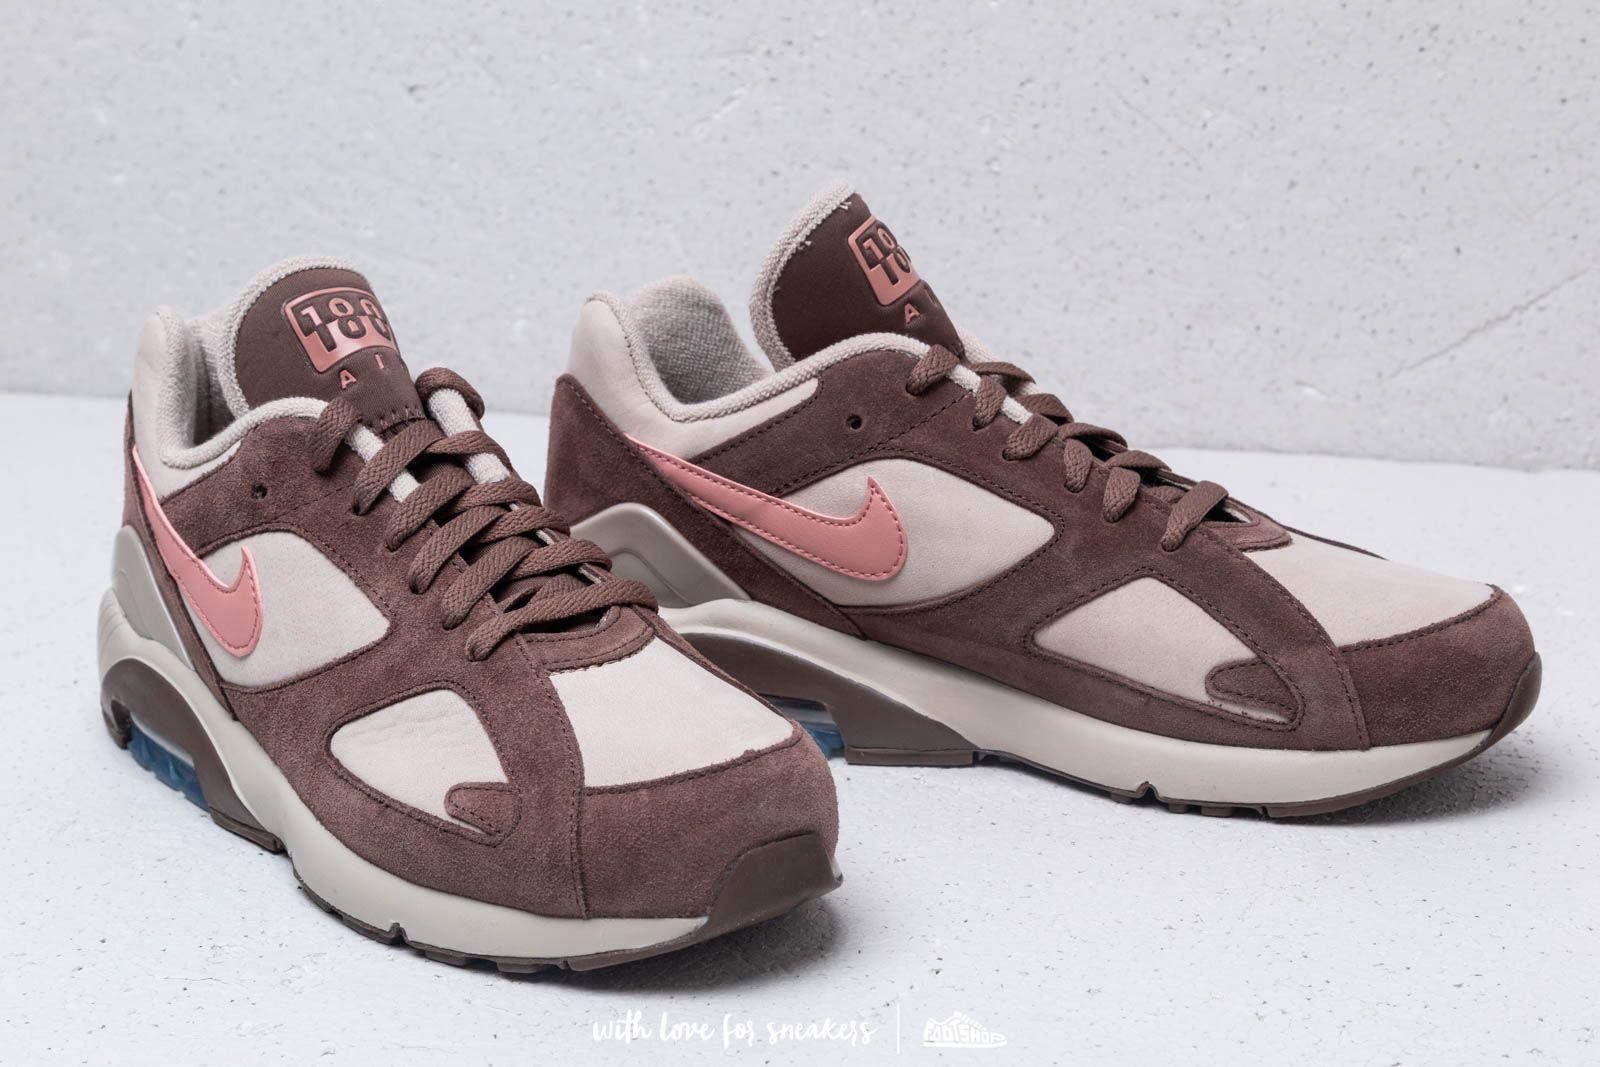 timeless design 88cc2 179c6 Lyst - Nike Air Max 180 String Rust Pink-baroque Brown in Br